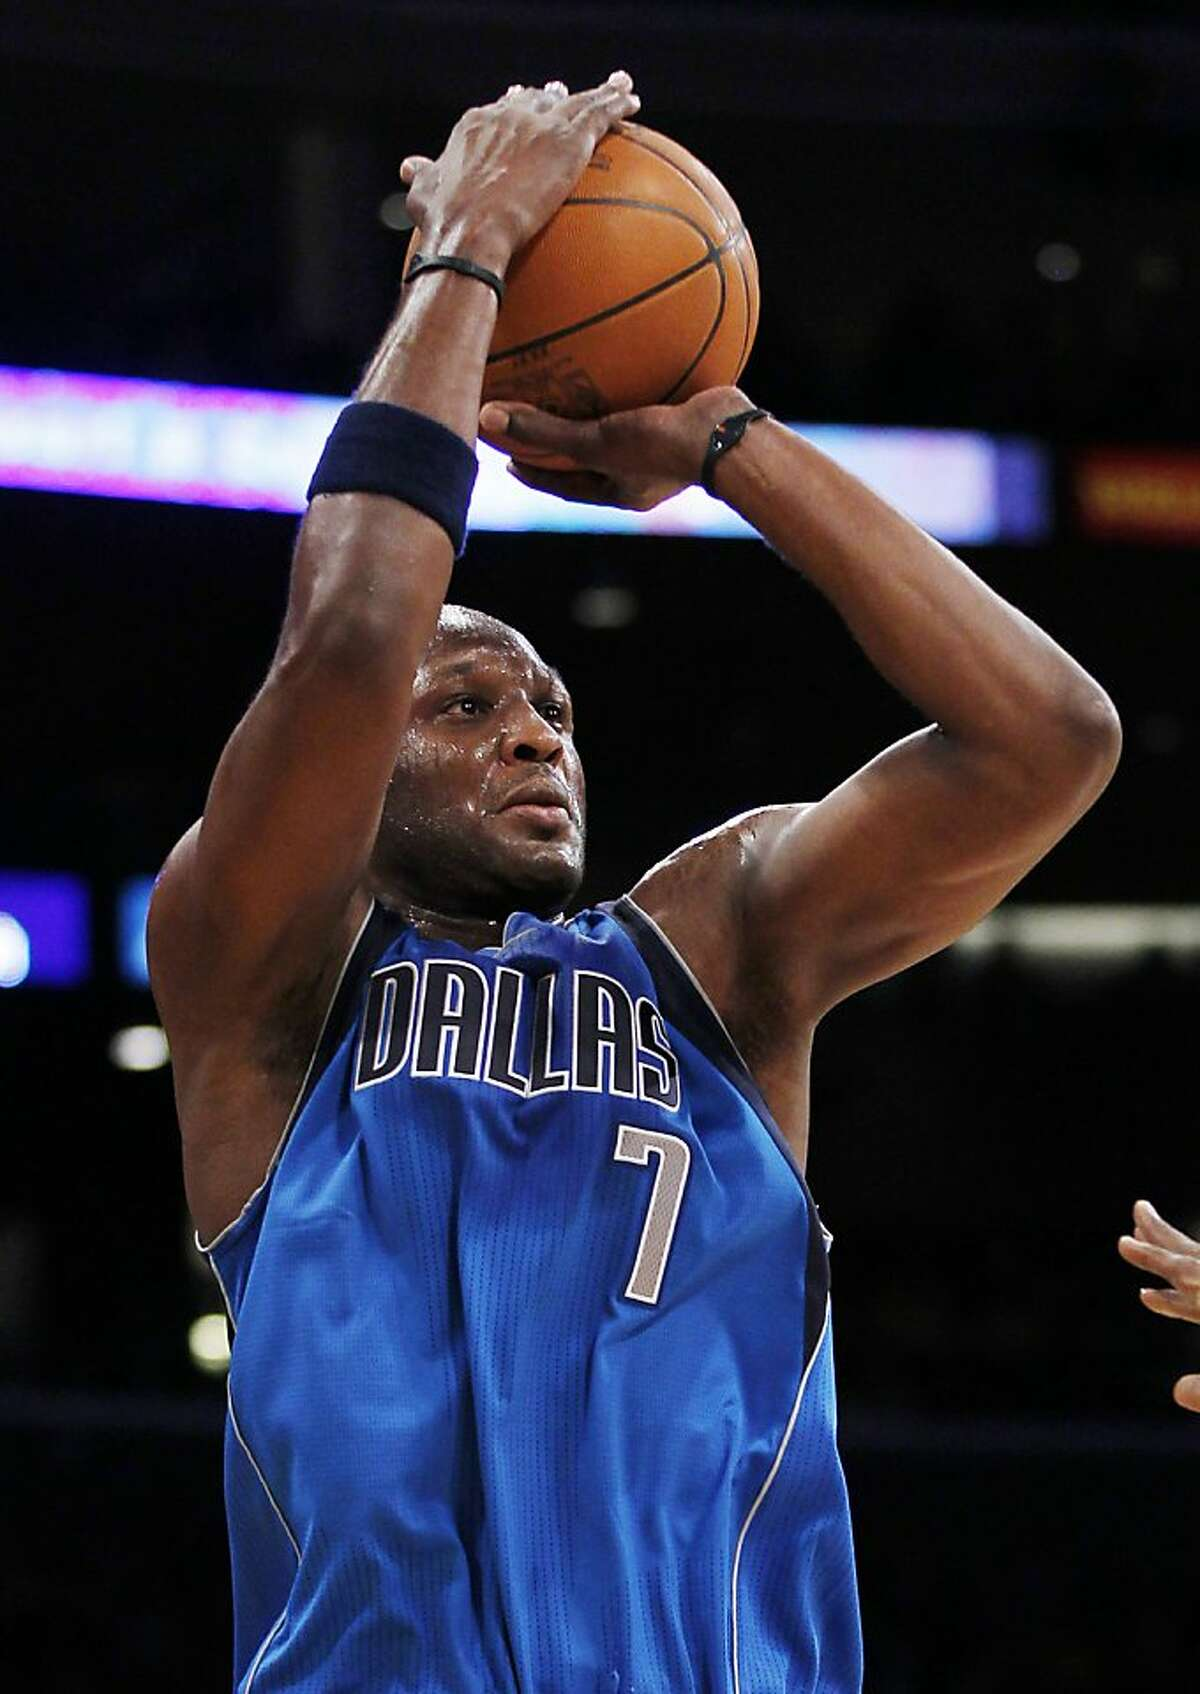 FILE - This Jan. 16, 2012 file photo shows Dallas Mavericks' Lamar Odom makin g a three-point shot against the Los Angeles Lakers during the first quarter of an NBA basketball game in Los Angeles. The NBA's reigning Sixth Man of the Year, who was shipped to Dallas after the Los Angeles Lakers tried to send him to New Orleans in the Chris Paul deal that was nixed by the league, will not play the rest of the season for the Mavericks, according to a person familiar with the decision who spoke Monday, April 9, 2012, on condition of anonymity because an official announcement had not been made. (AP Photo/Danny Moloshok, File)